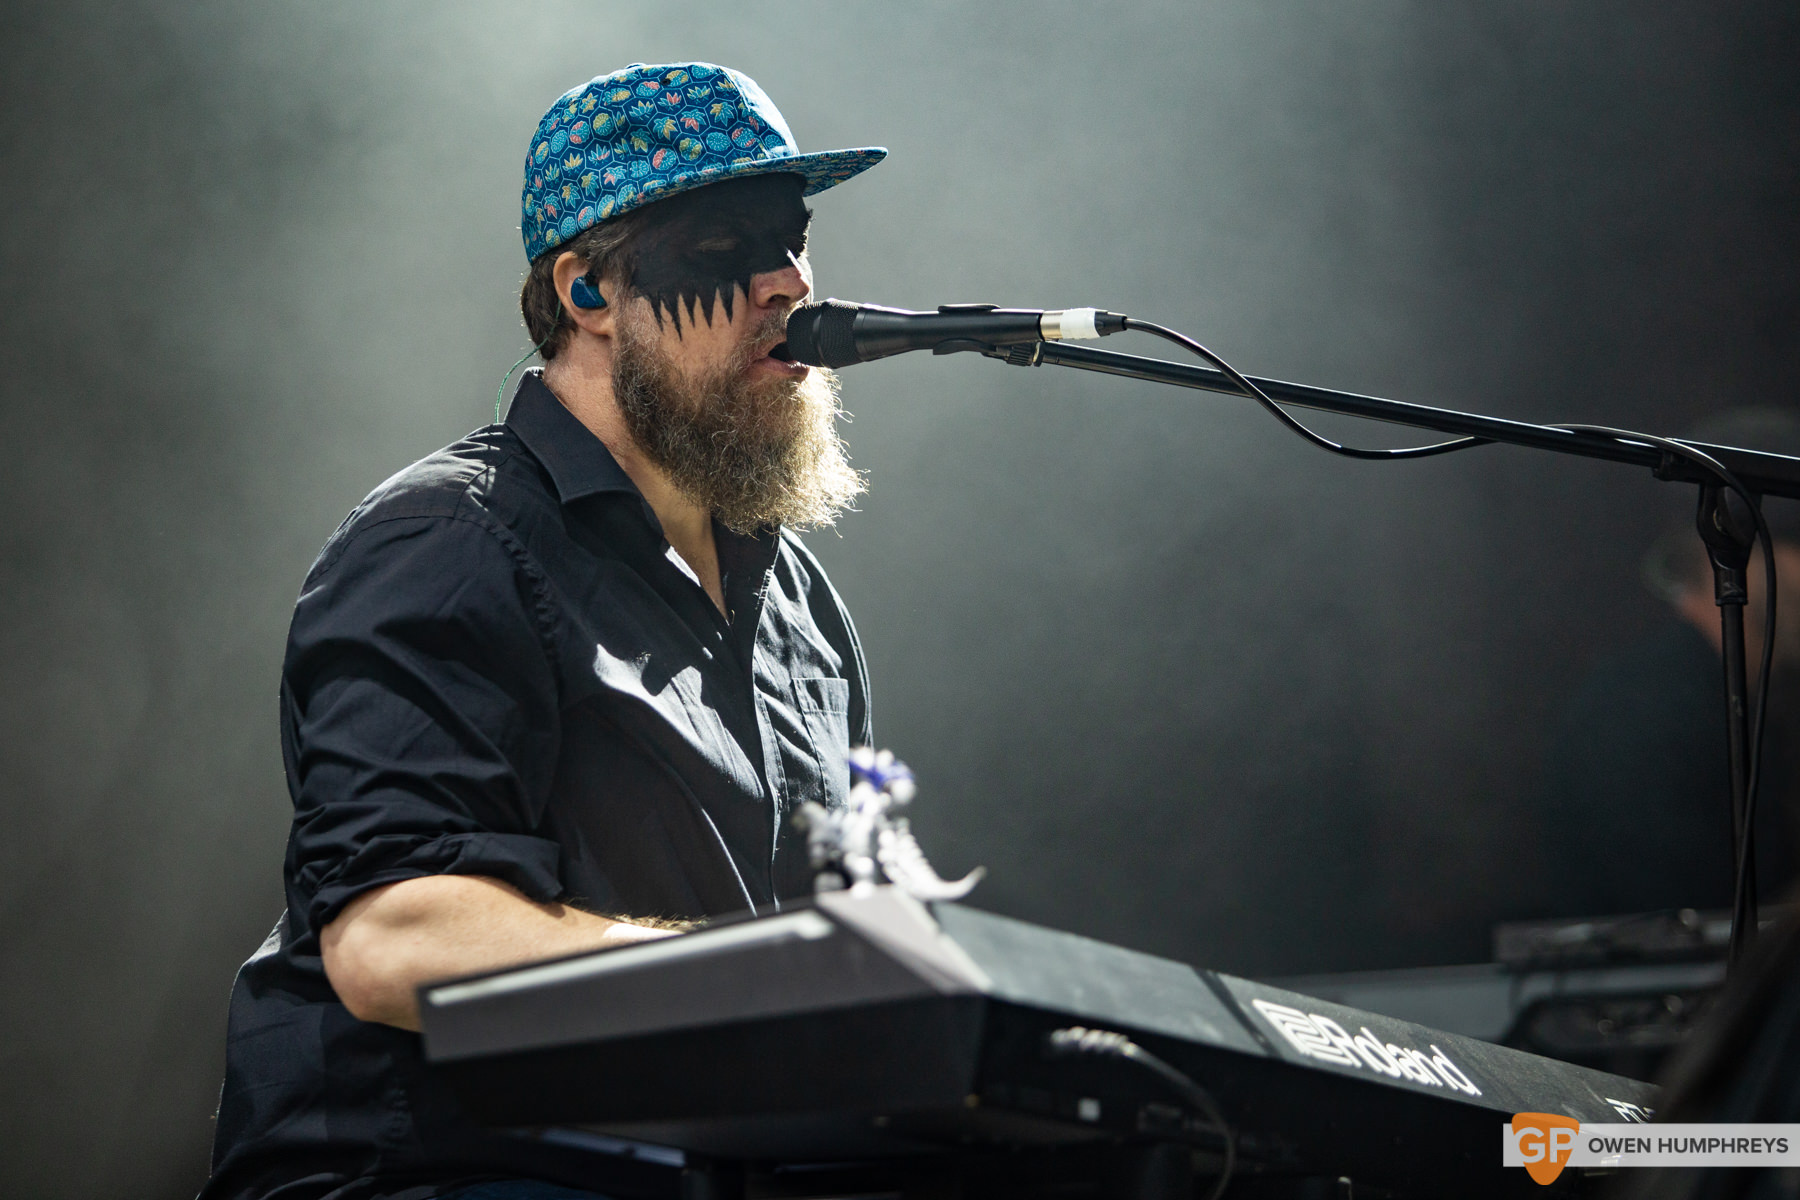 John Grant at All Together Now 2019. Photo by Owen Humphreys. www.owen.ie